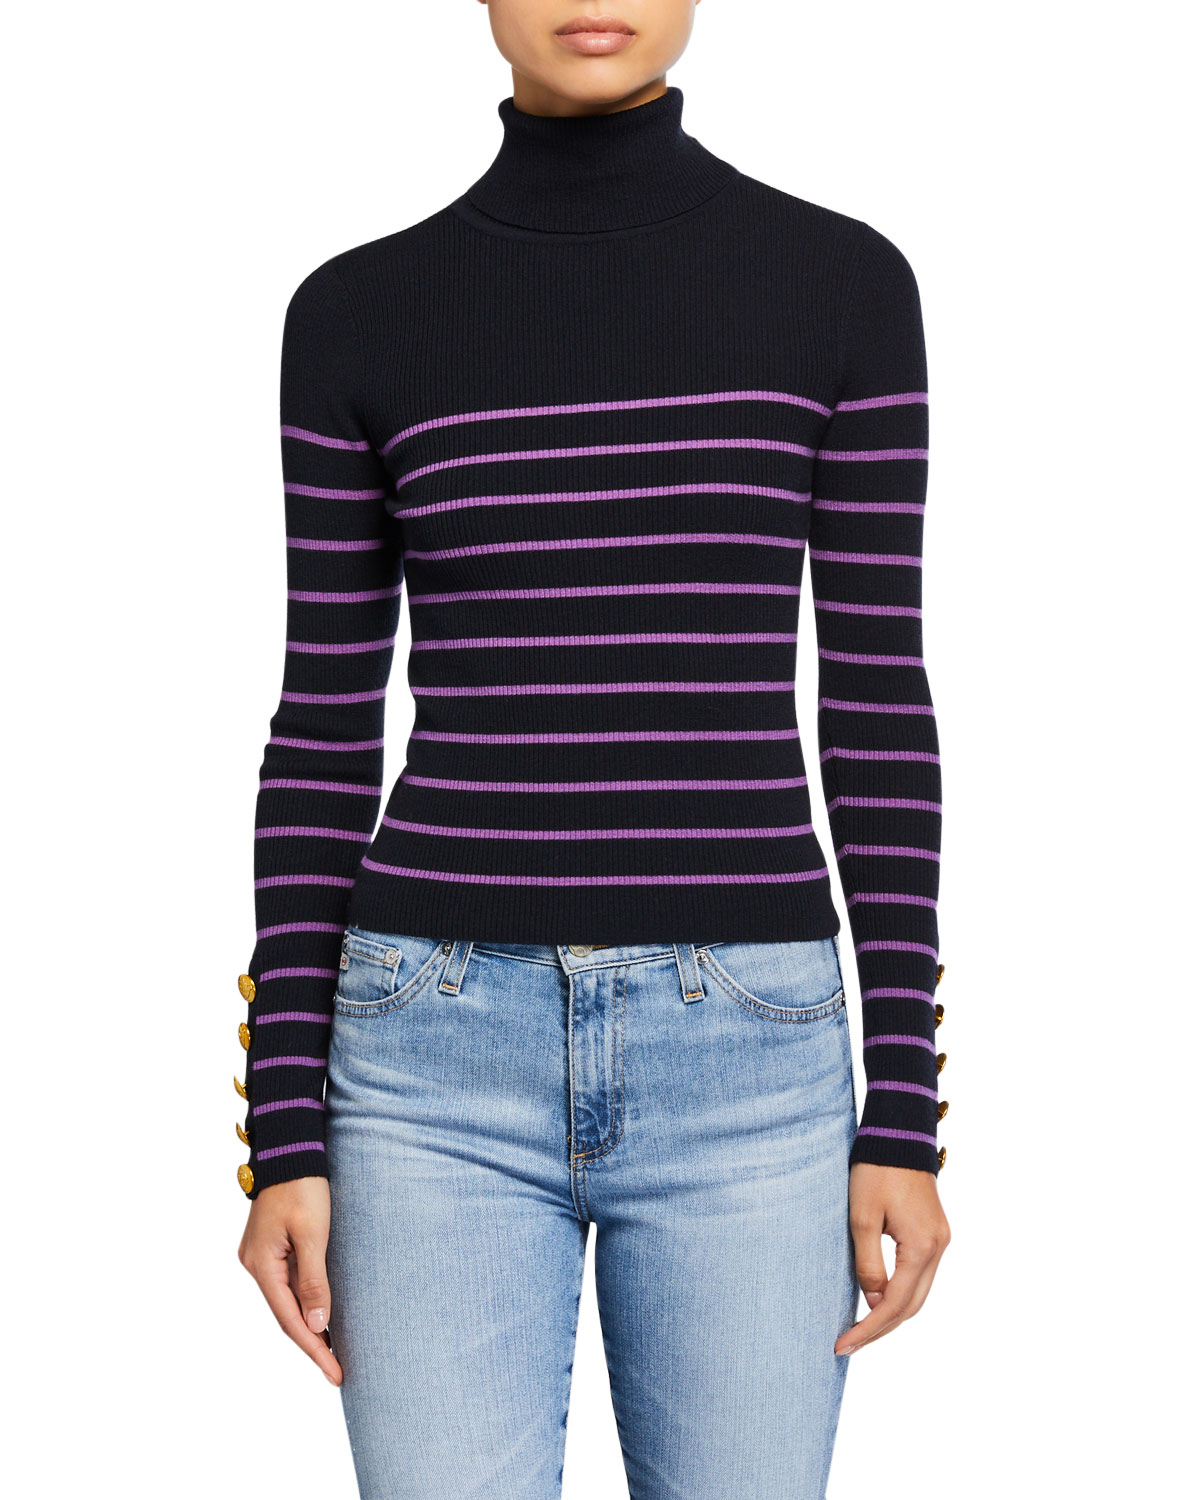 A.l.c Sweaters DESI STRIPED TURTLENECK SWEATER